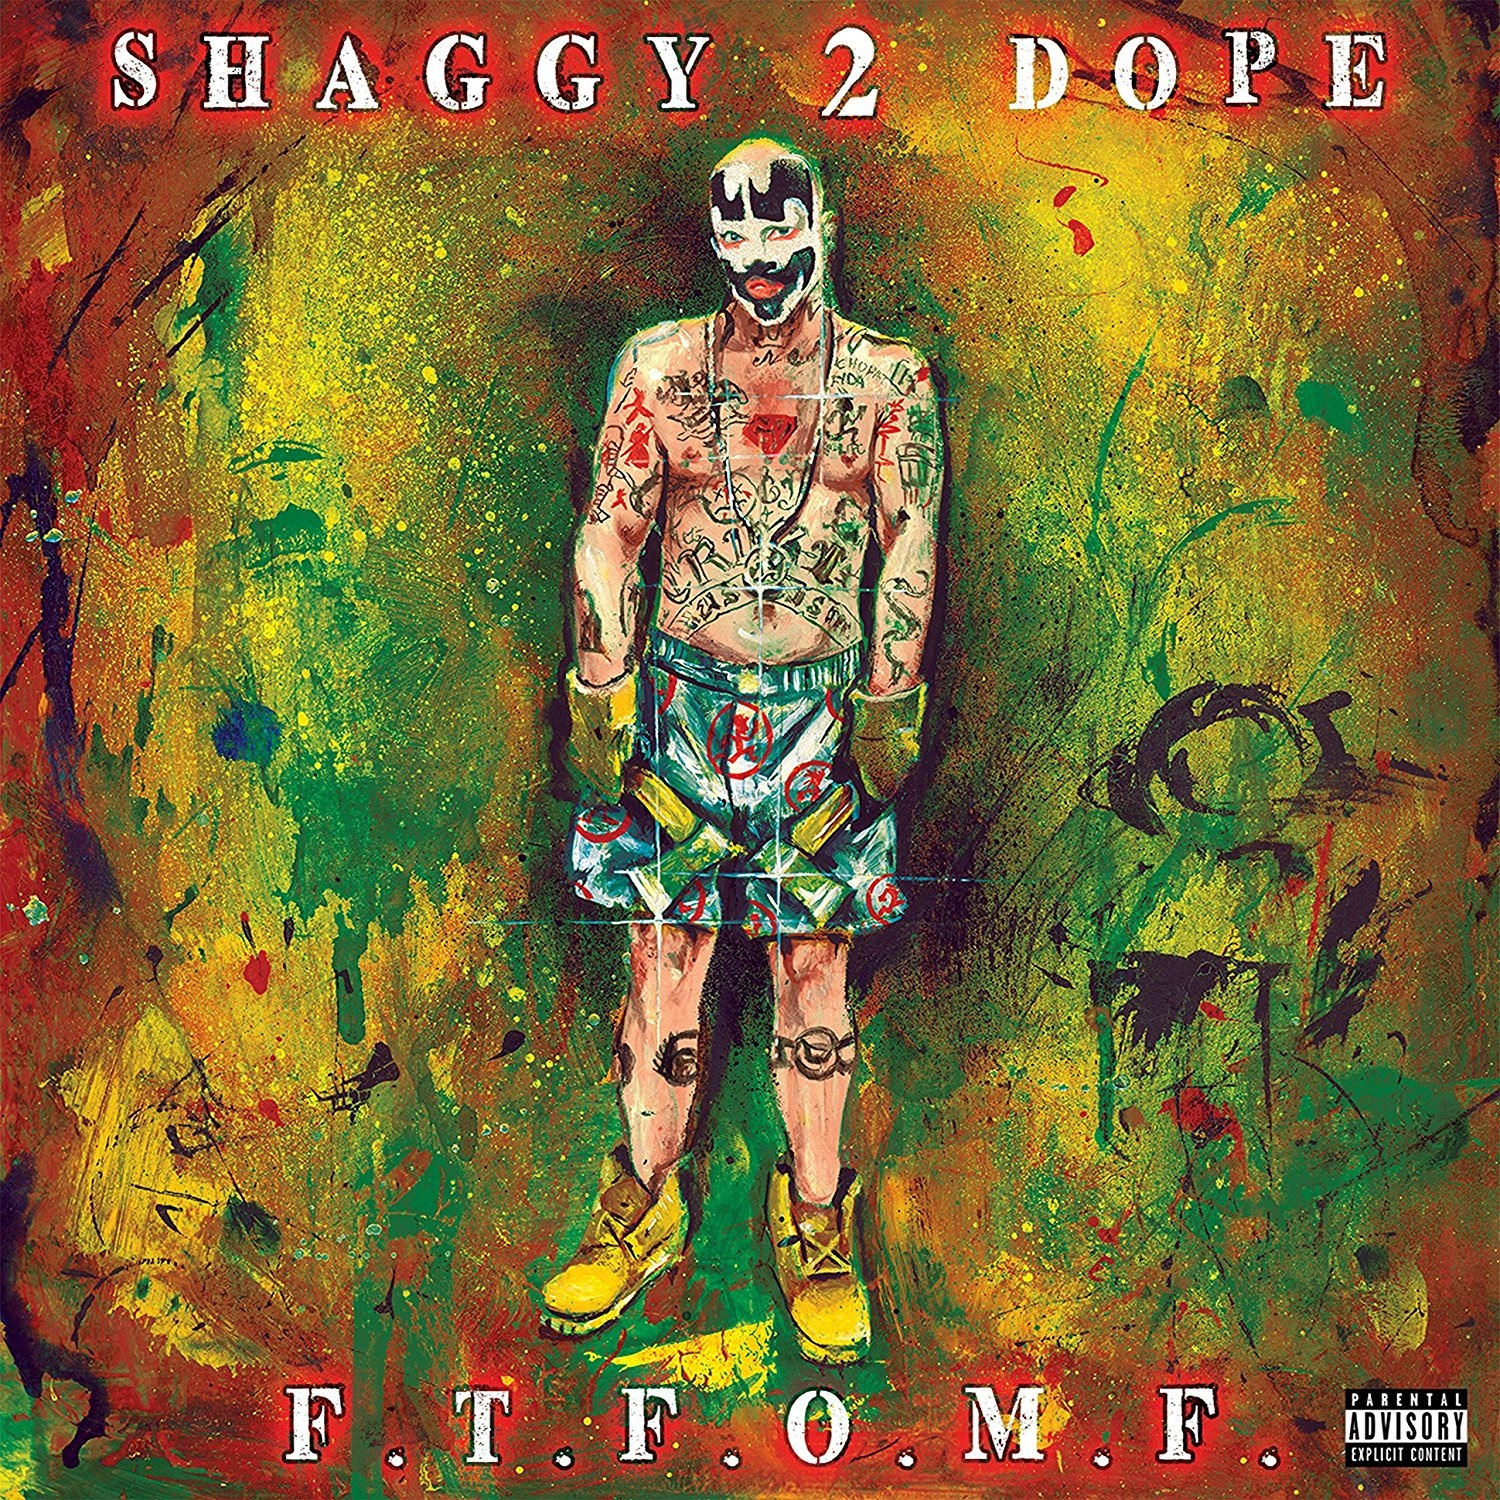 Shaggy 2 Dope Day next Friday, May 26th! | Faygoluvers